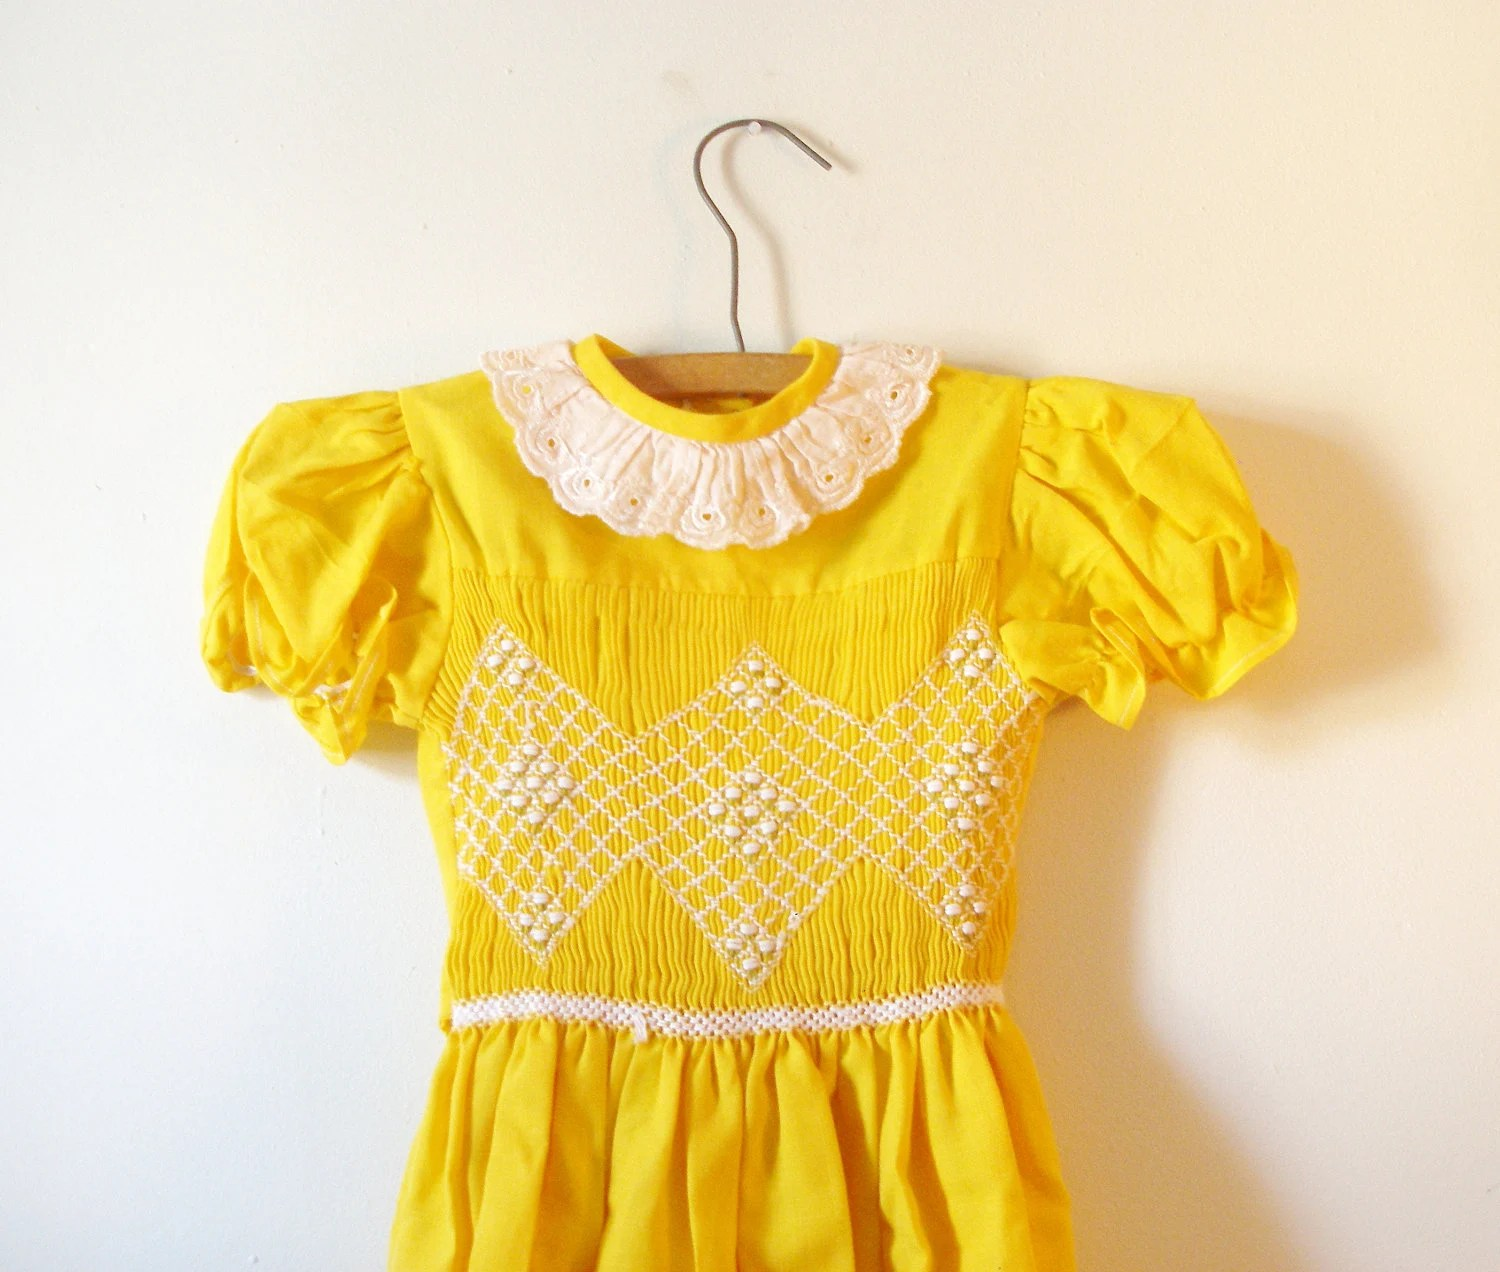 Here Comes the Sun Yellow and White Flowery Hand Smocked Vintage Easter Dress 1950s (Girls Size 6T) - ThingsILikeVintage